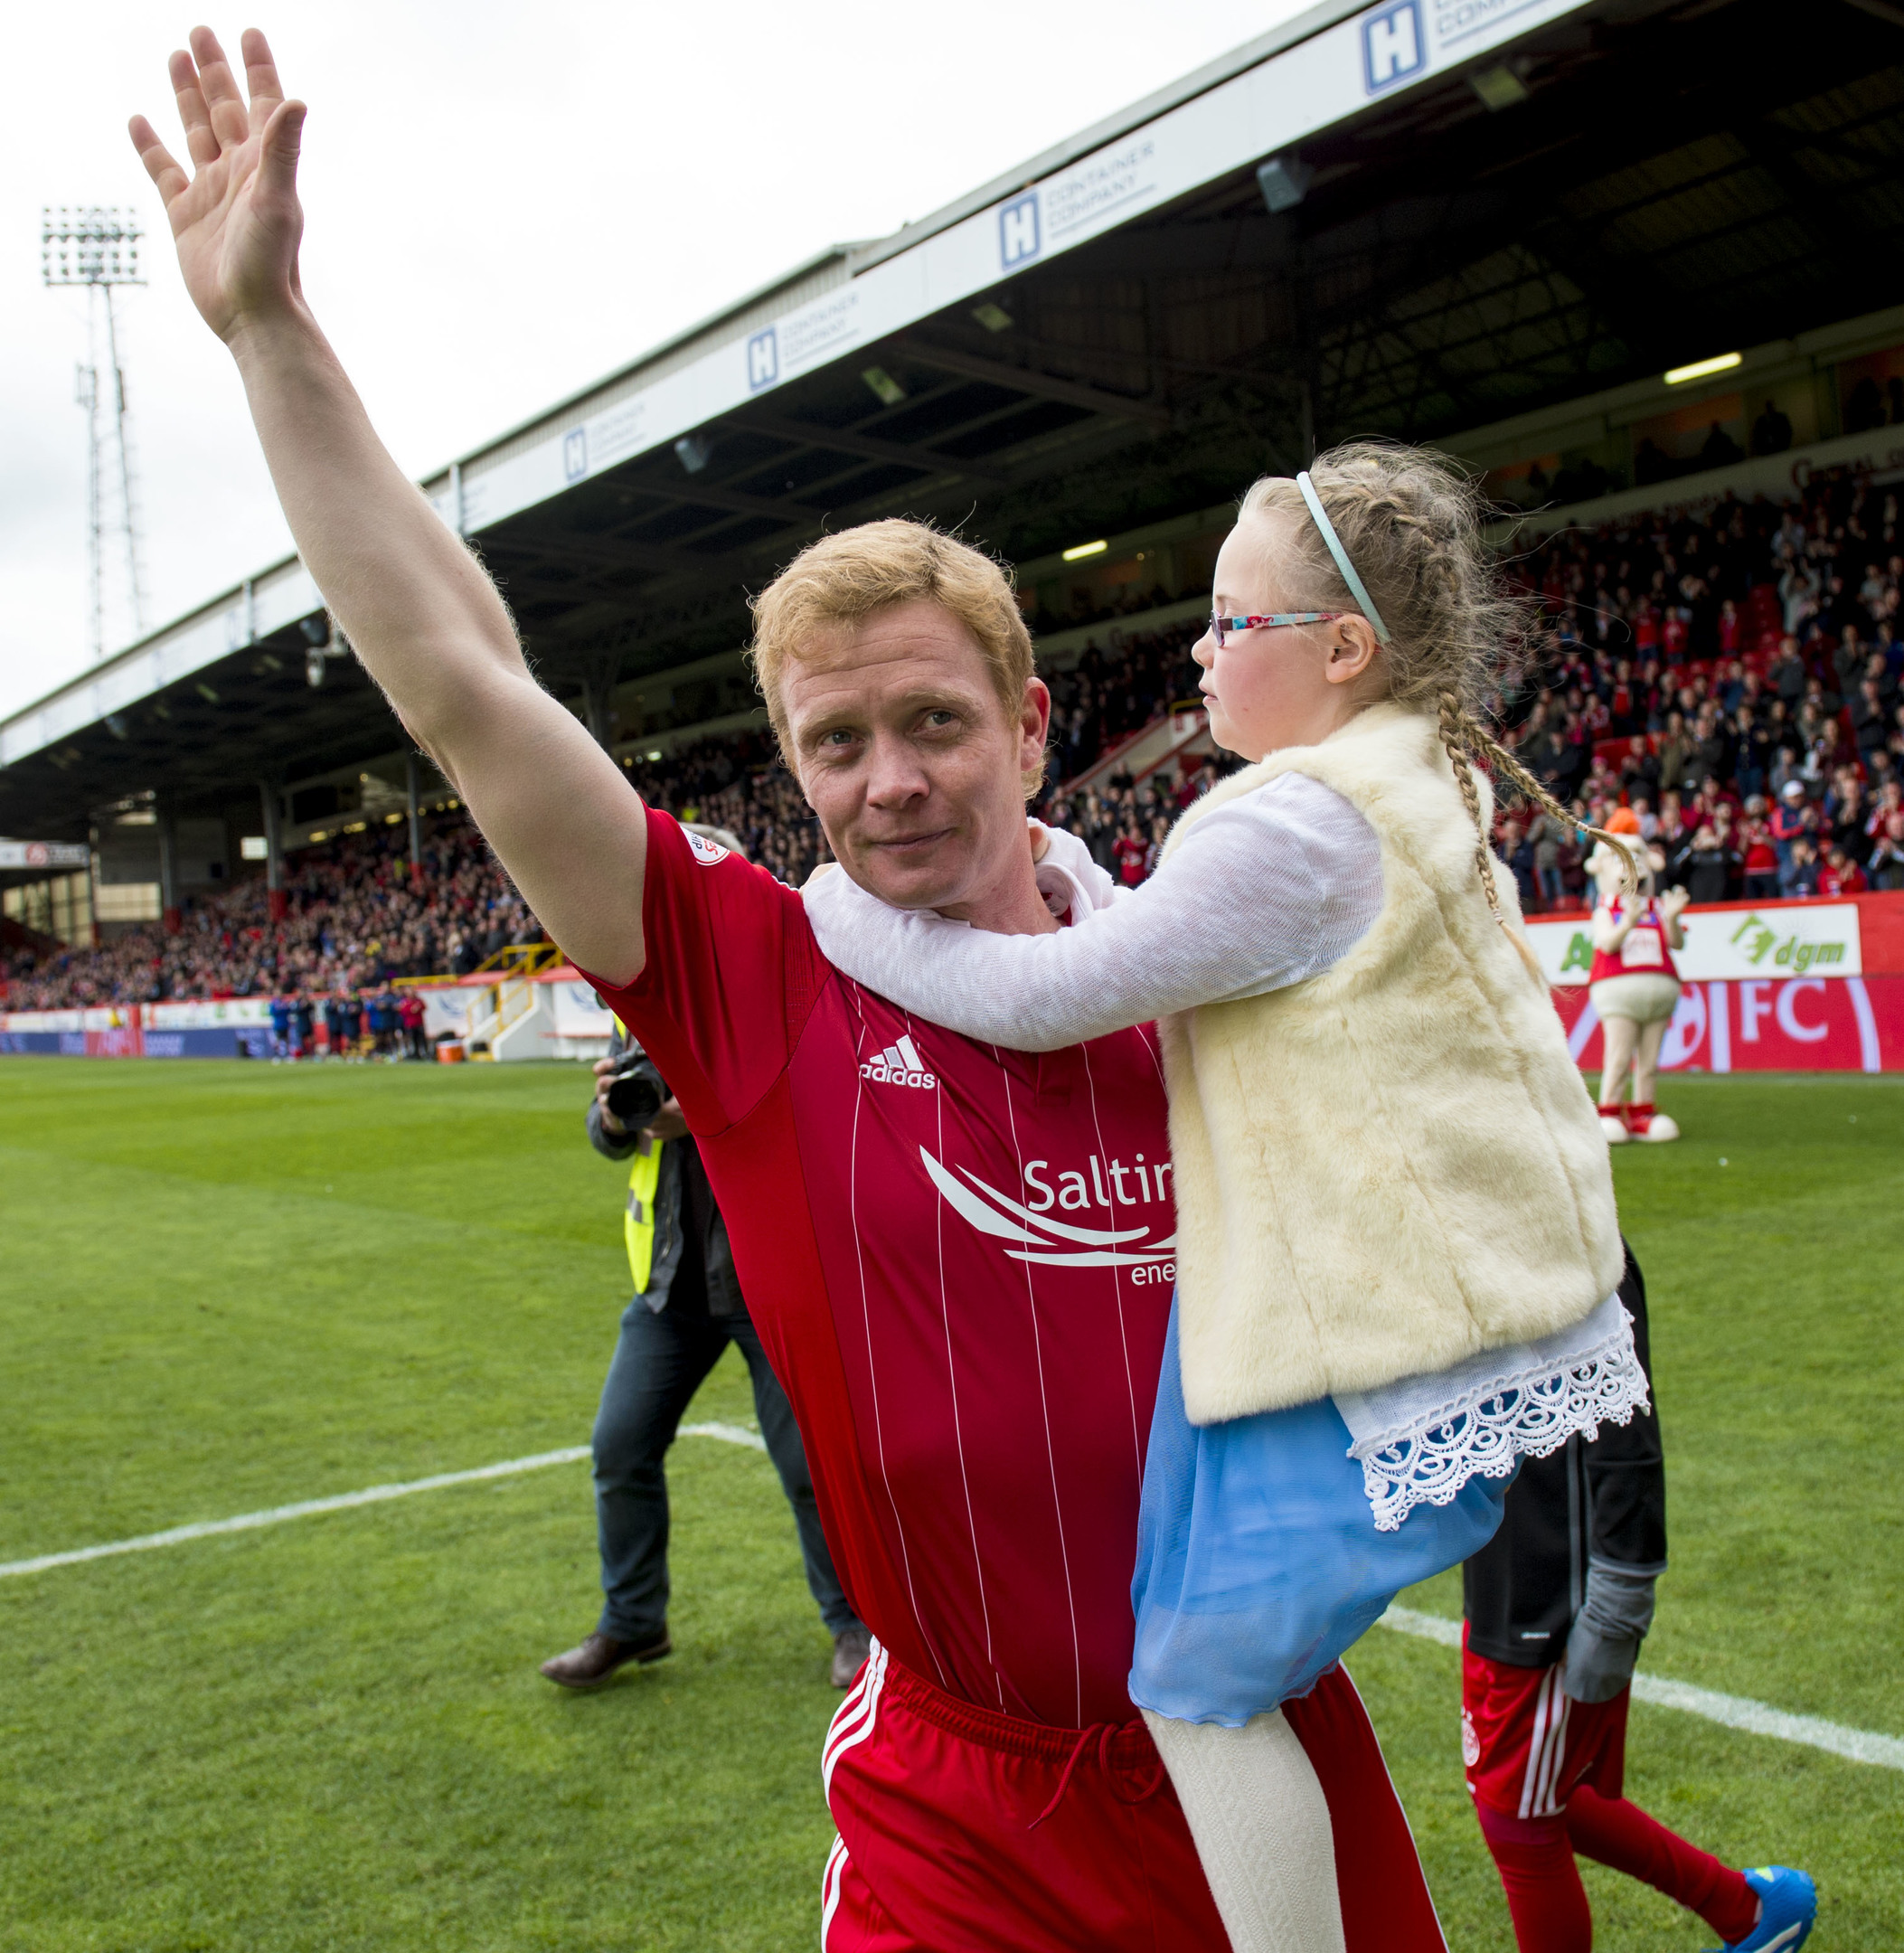 Aberdeen's Barry Robson show his appreciation to the fans